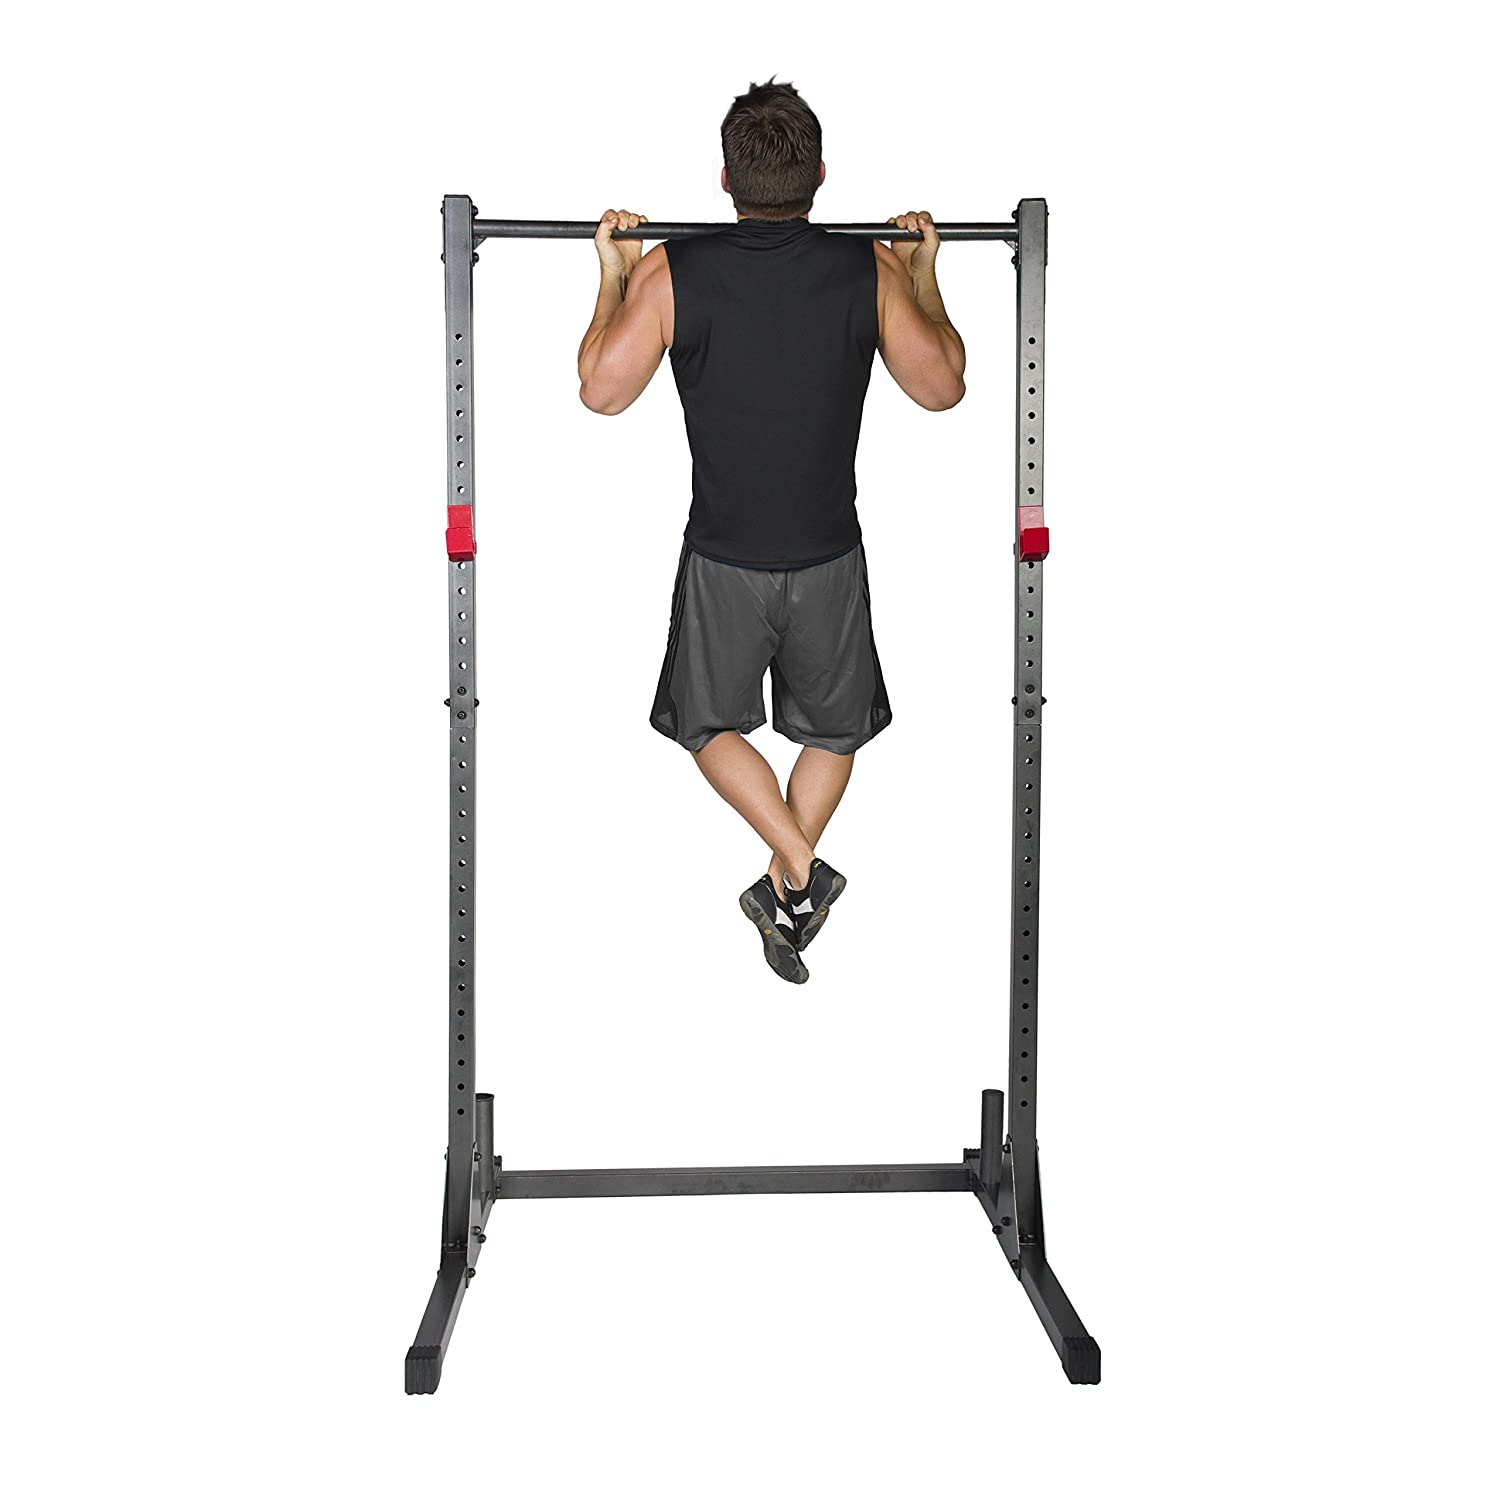 Best Squat Rack with Pull up Bar Reviews